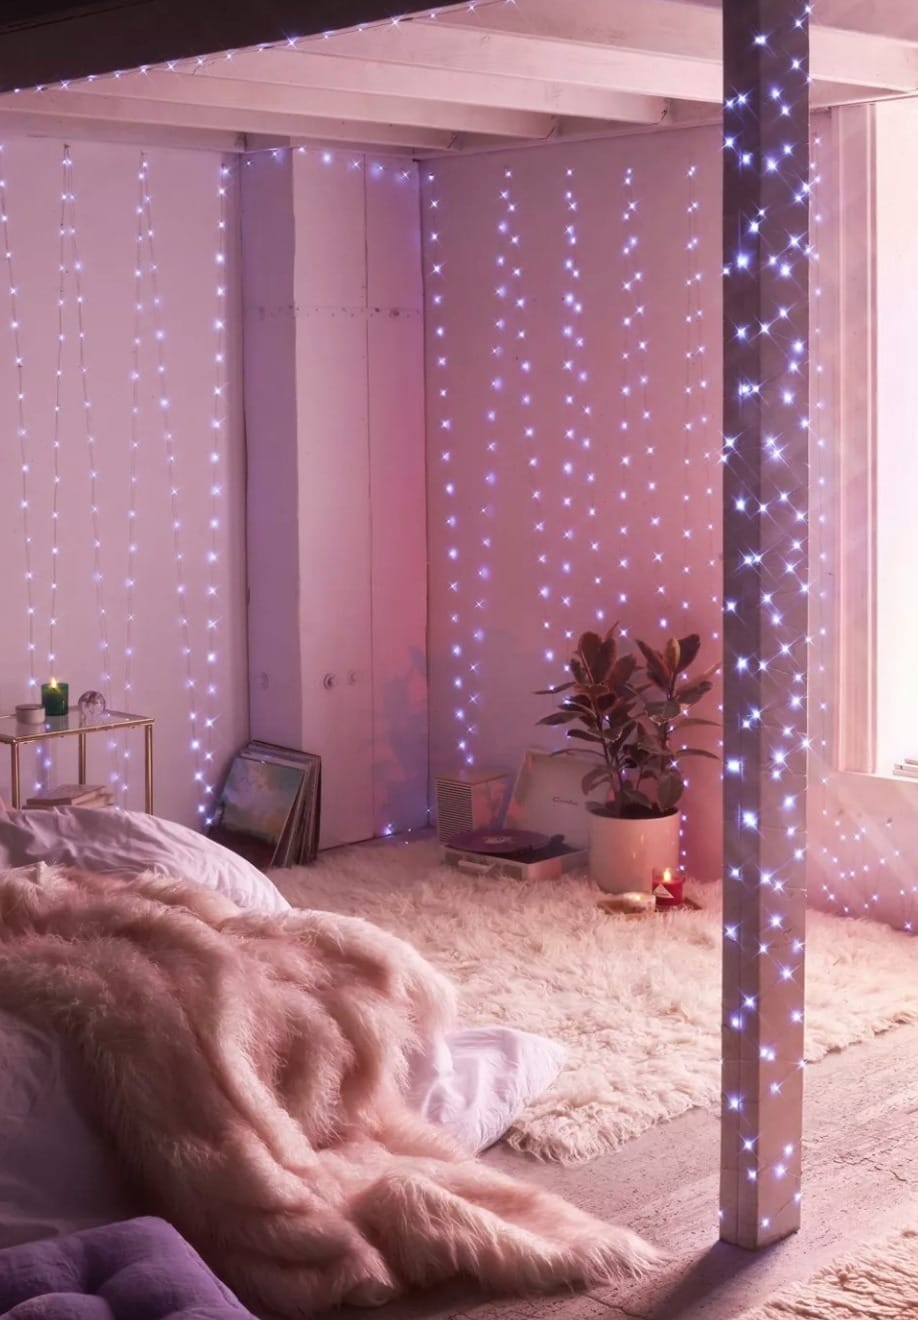 Turn Your Basement Into a Galaxy of Stars